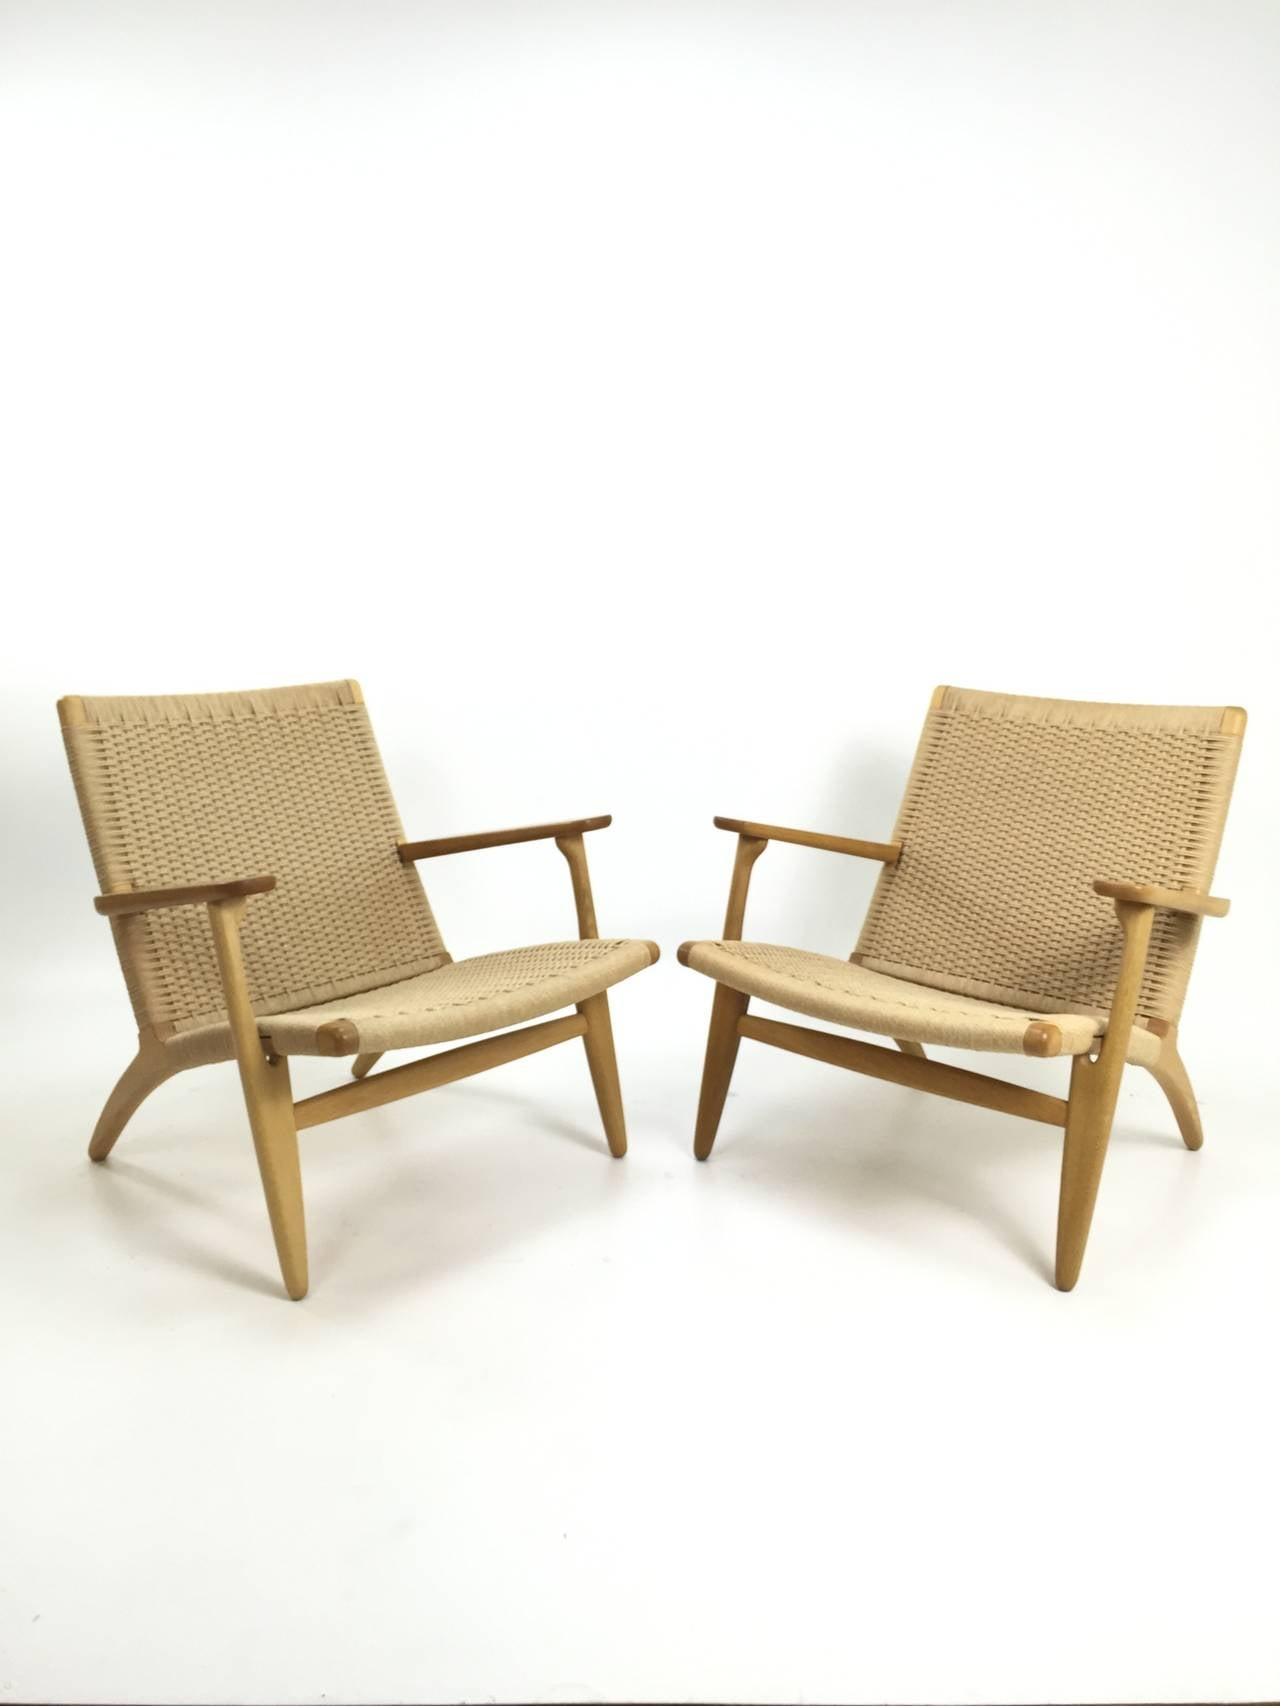 pair of hans wegner ch25 chairs for carl hansen at 1stdibs. Black Bedroom Furniture Sets. Home Design Ideas